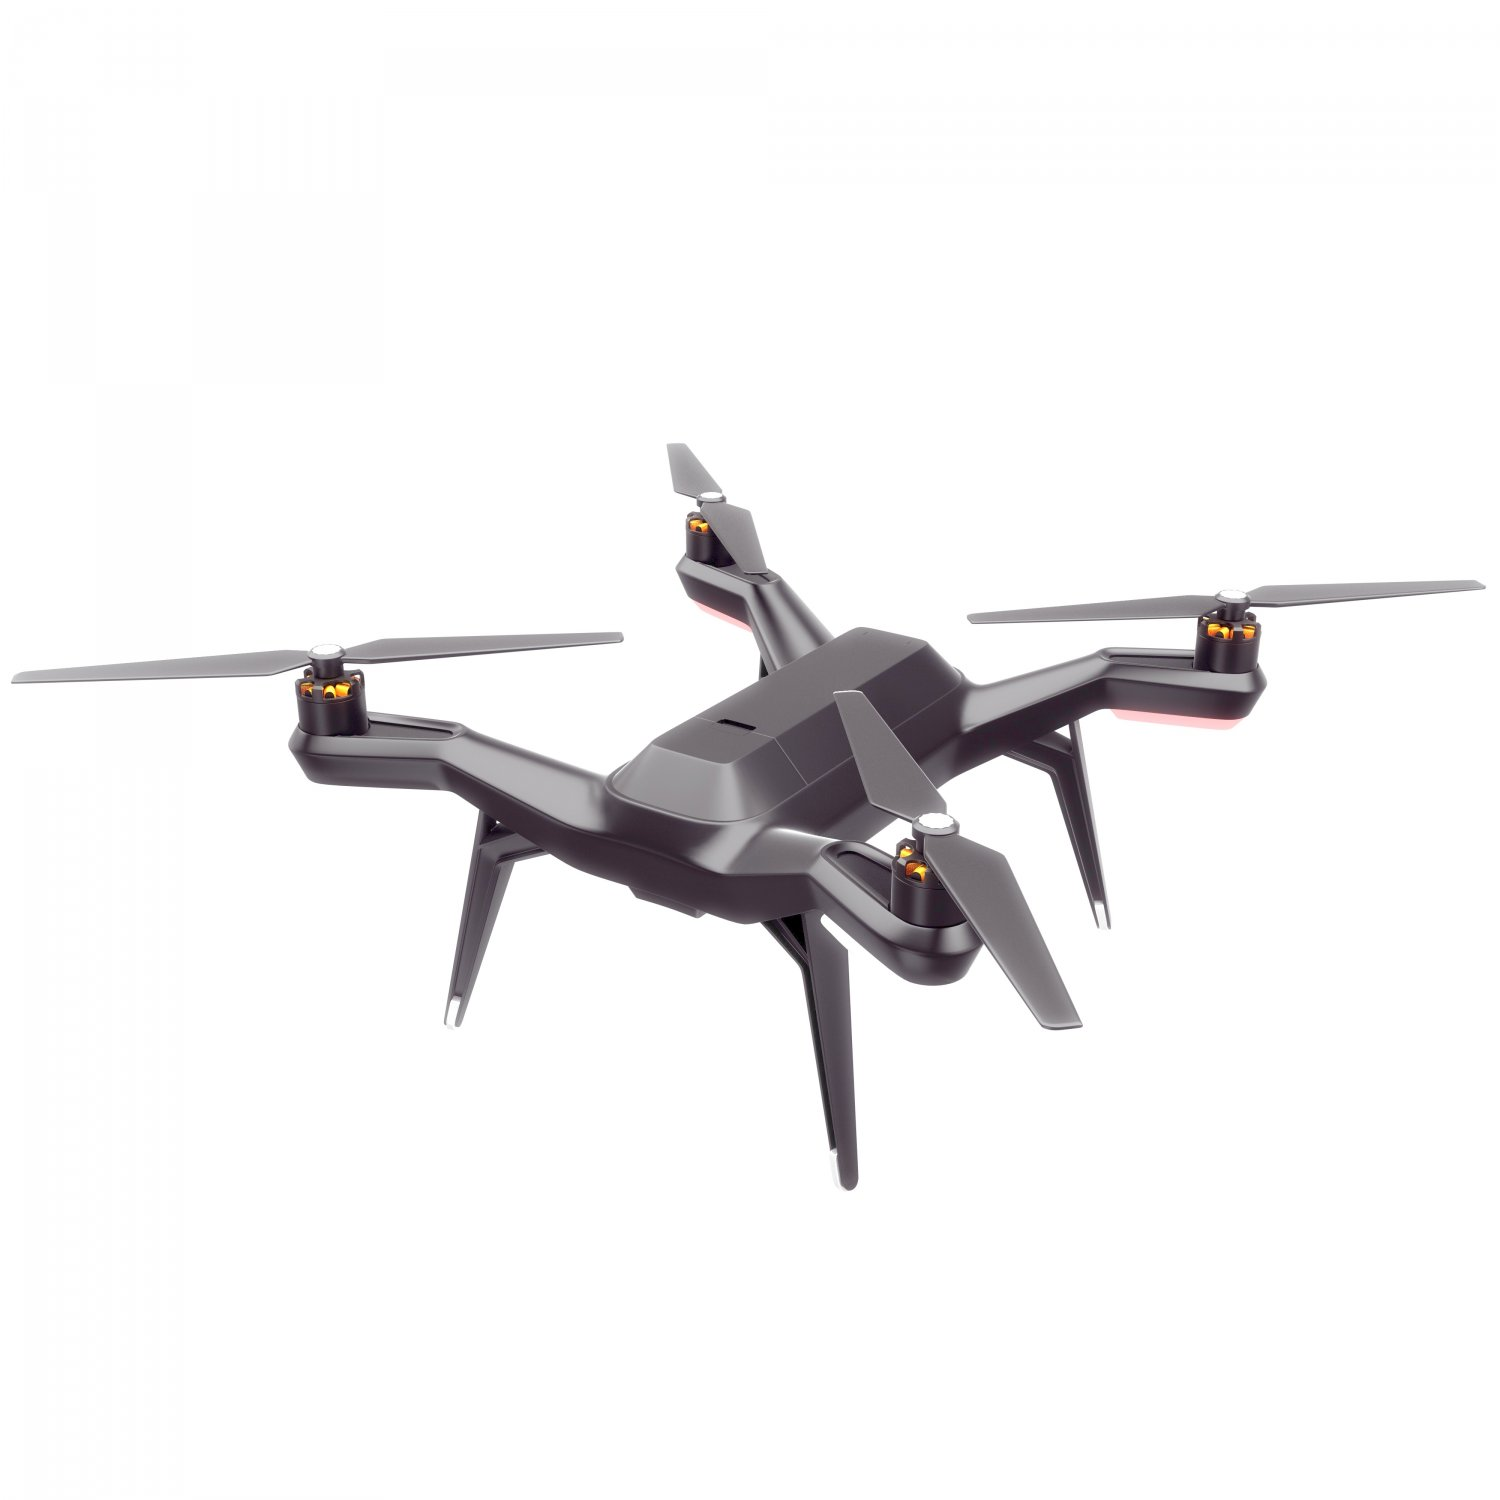 3DR solo quadcopter drone 3d model 3D Model in Helicopter 3DExport